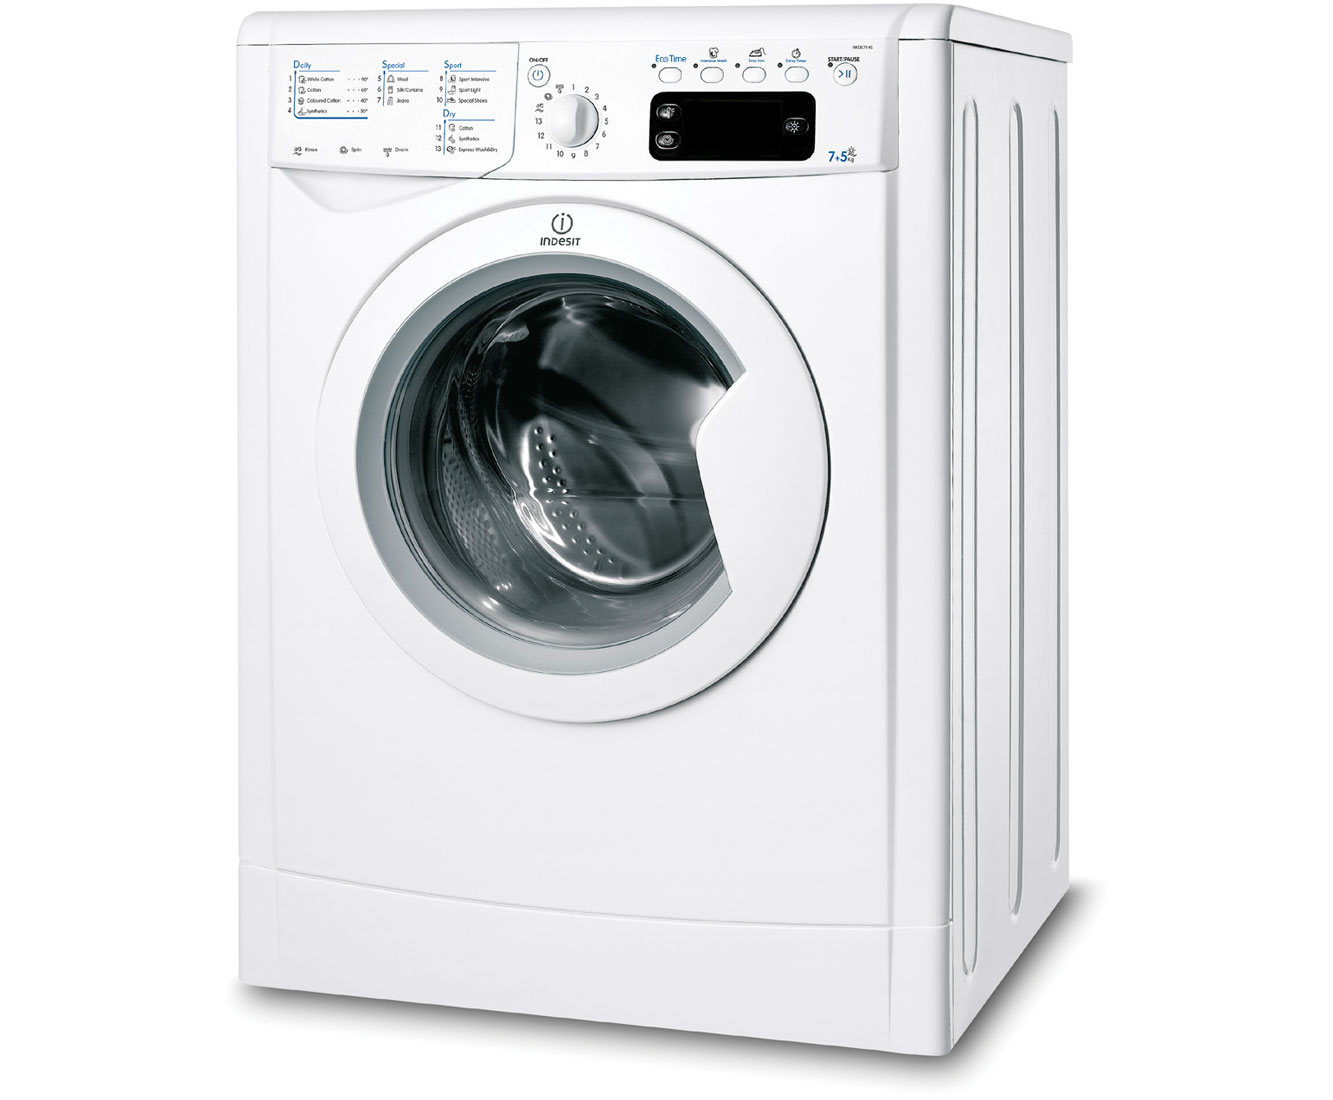 Indesit Advance IWDE7145B 7Kg / 5Kg Washer Dryer with 1400 rpm - White